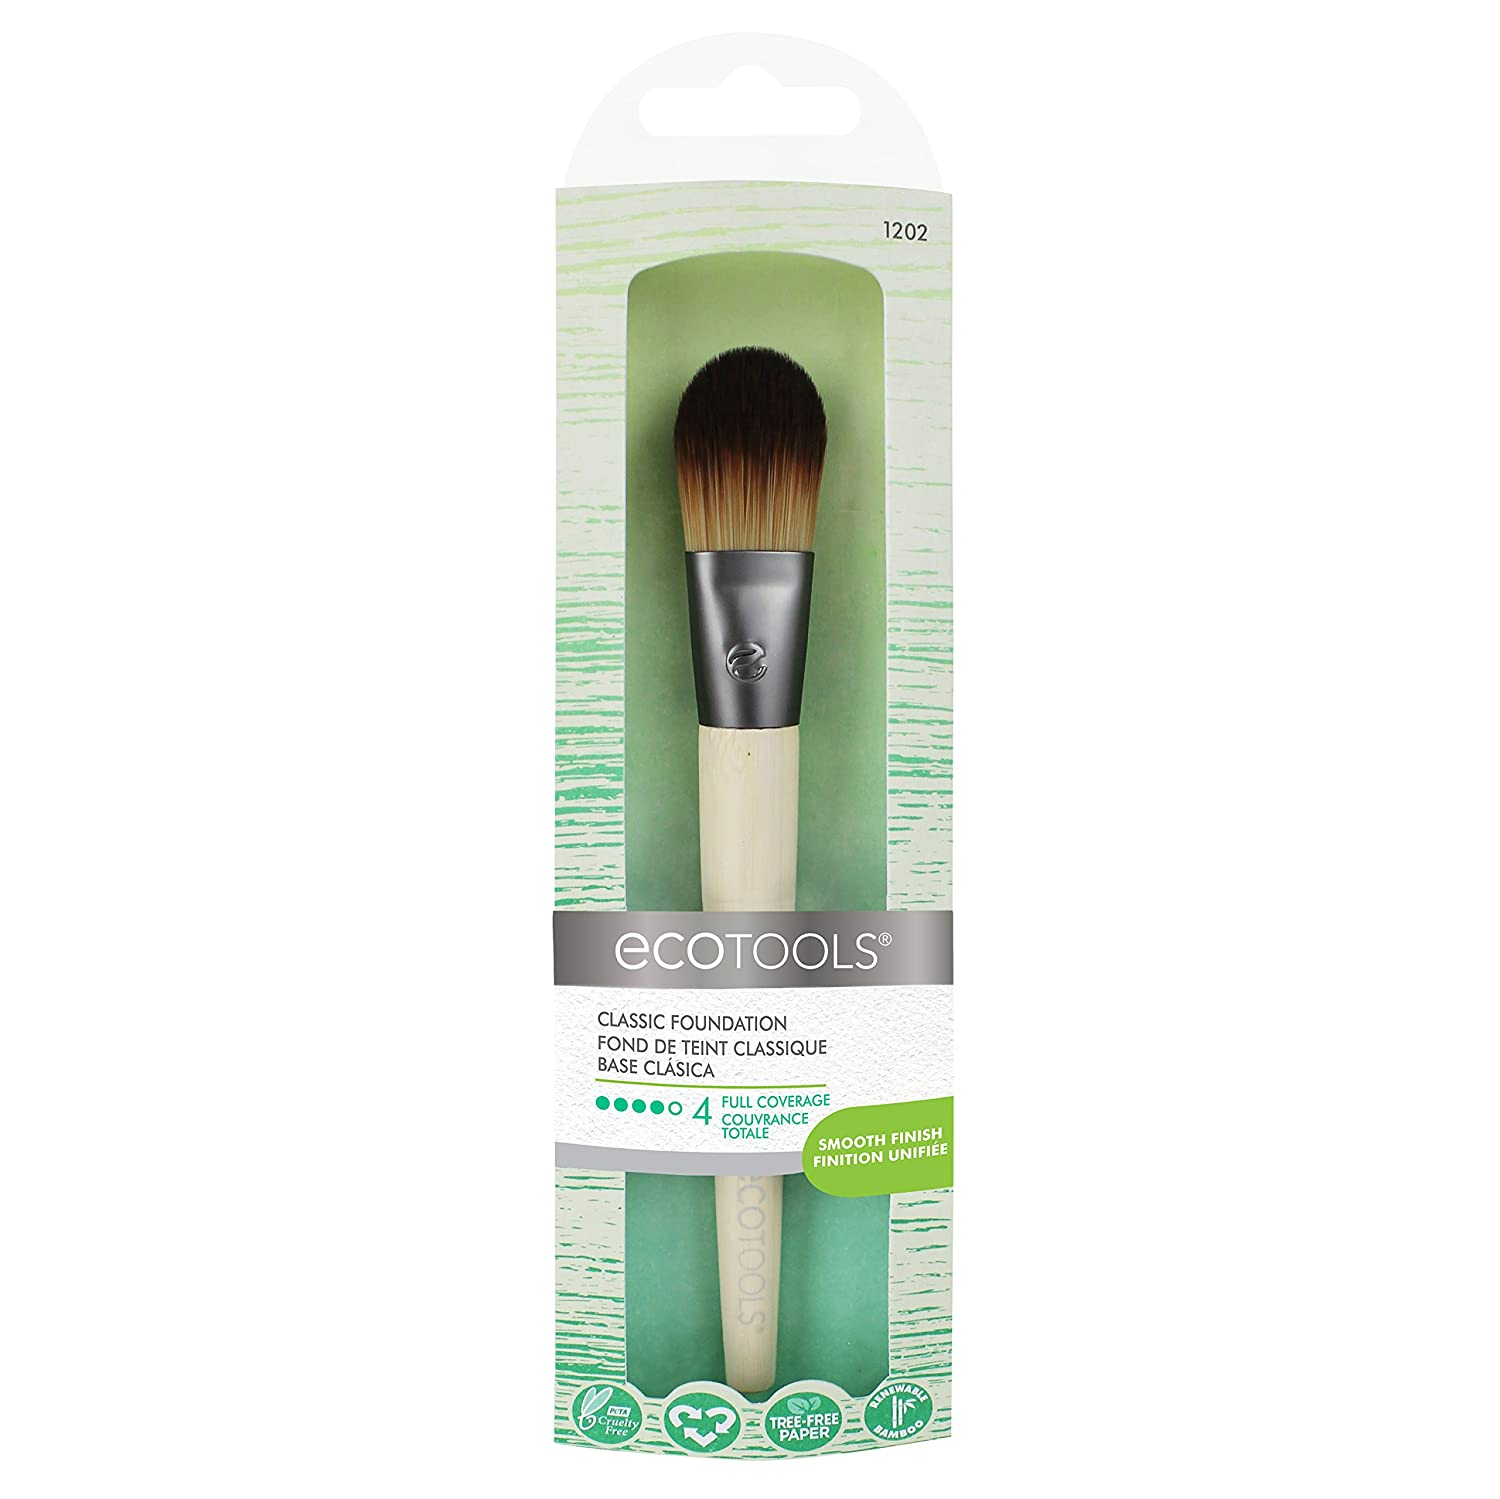 EcoTools Classic Foundation Make-up Brush Paris Presents 1202